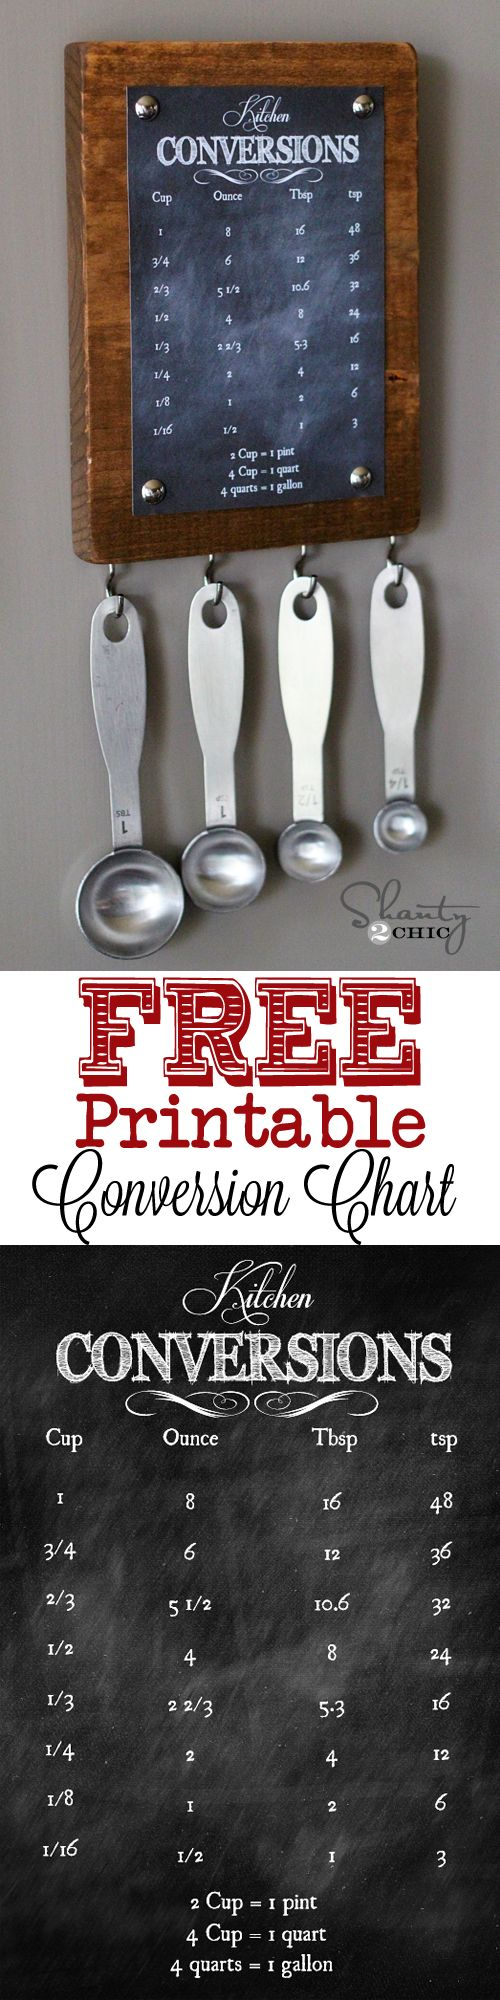 Kitchen Conversion Chart  FREE Printable